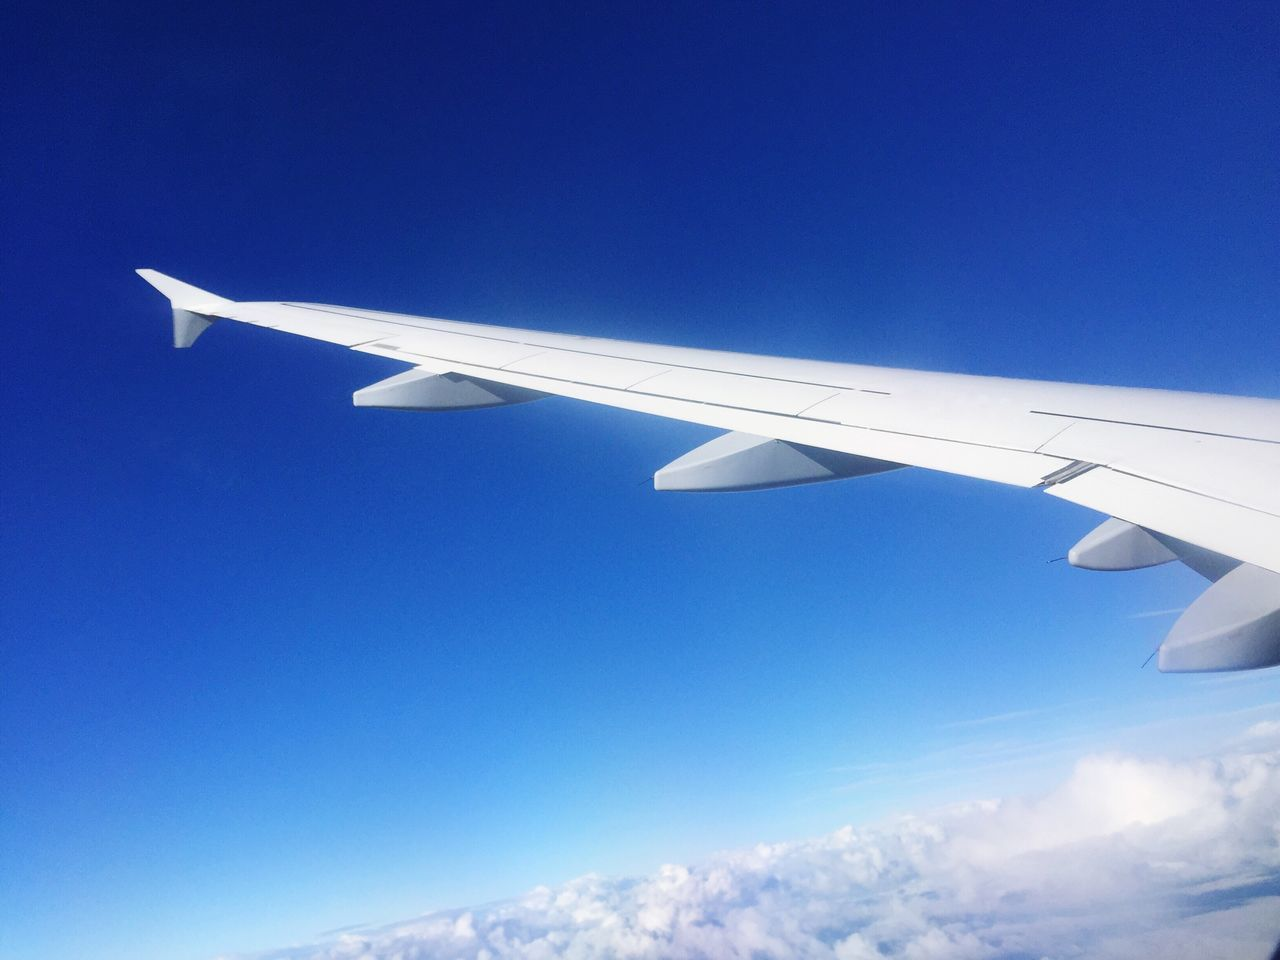 Airplane Clear Sky Flying Travel Sky Blue Transportation Transportation Low Angle View Journey Air Vehicle Mid-air Aircraft Wing Airplane Wing Outdoors Nature Clouds And Sky Sunshine View Sun Flying High Fly Travel Scenics Beauty In Nature